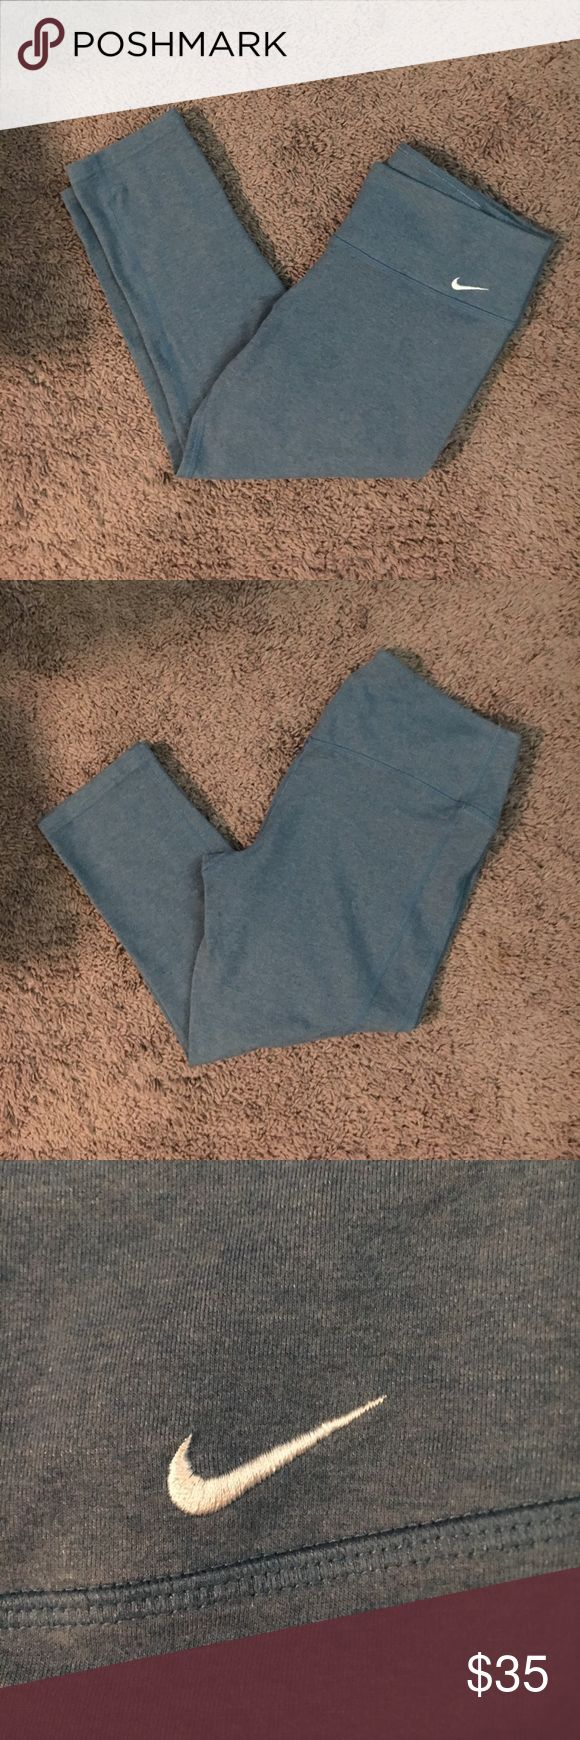 Nike 3/4 Dry-Fit Running/ Work Out Pant EUC Nike Dry-Fit Running Pant. 3/4 pant length like capris. Size women's large. Nike Pants